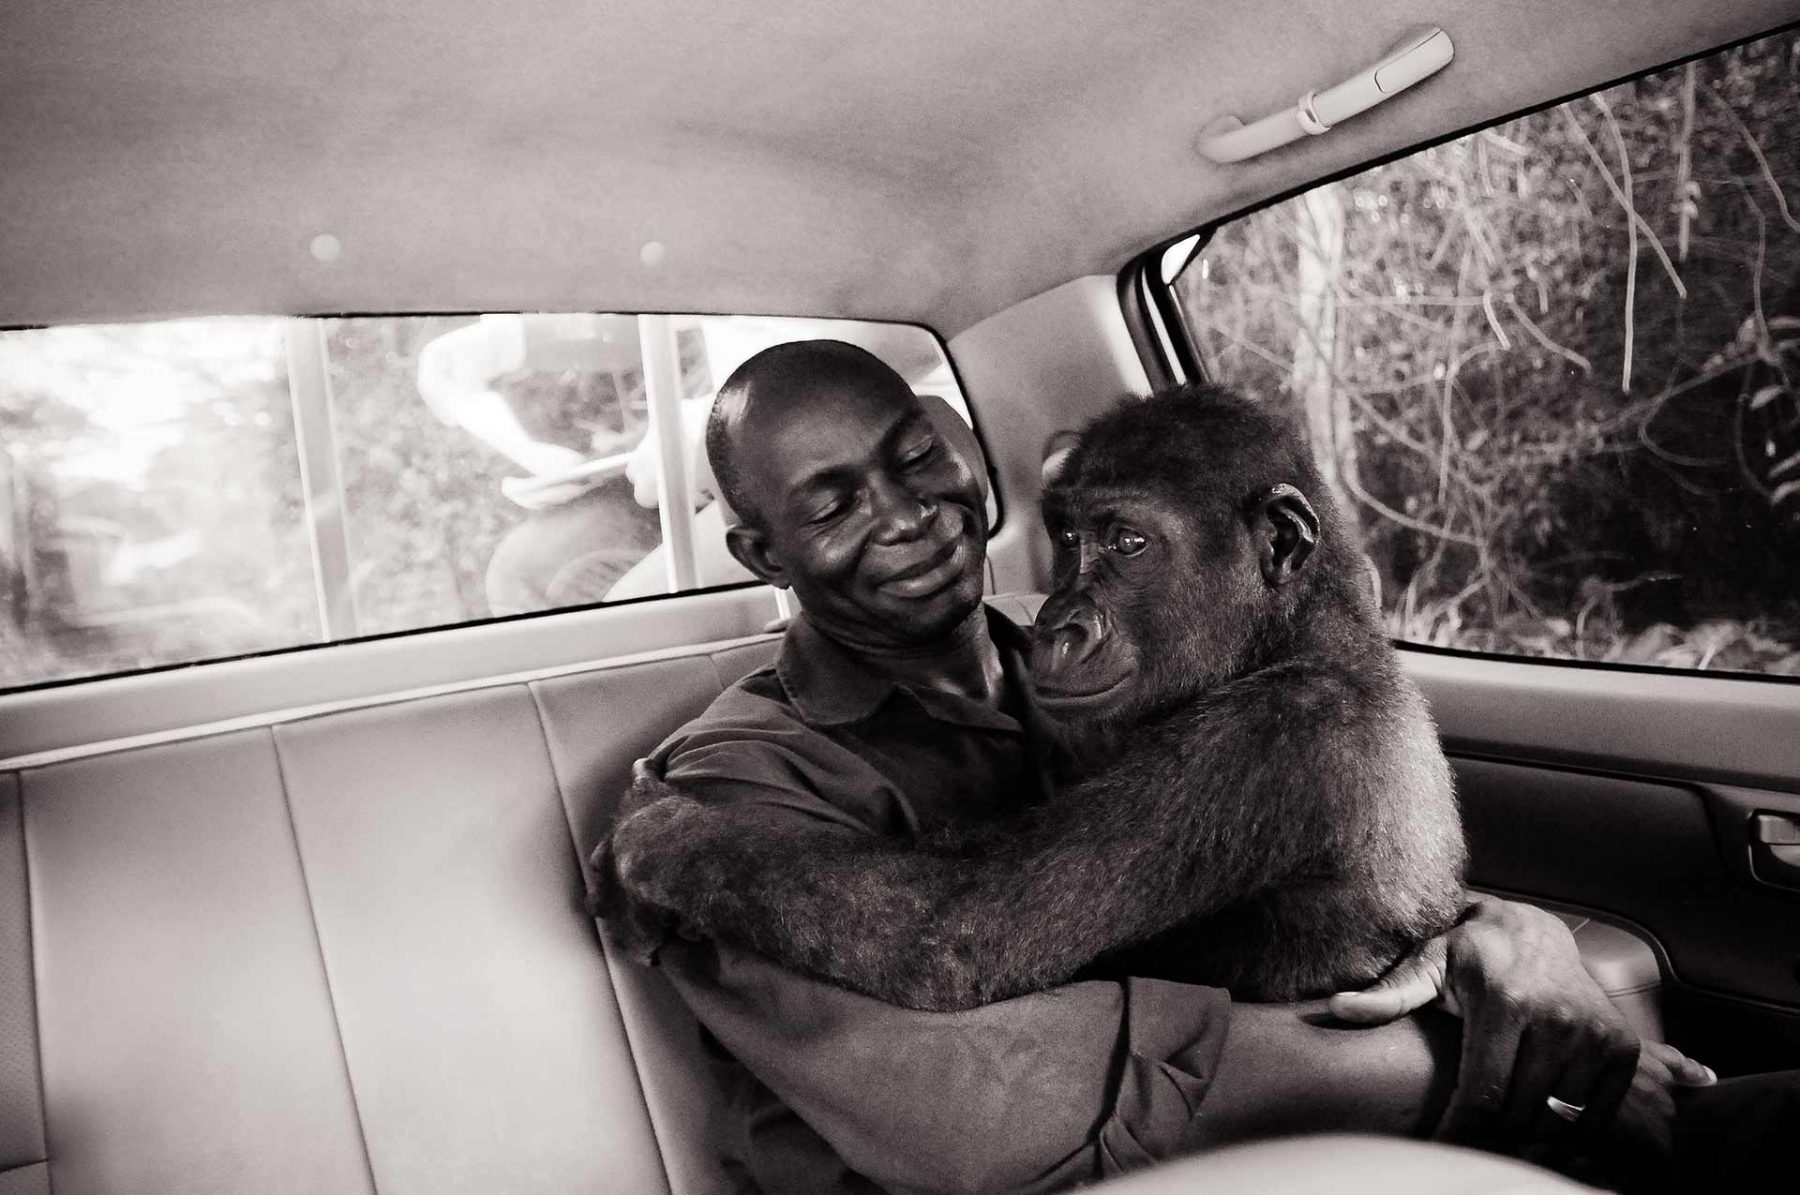 Appolinaire and Pikin. Pikin was orphaned by the bush meat trade in Africa. Here, she is being transported from the vet clinic to a new sanctuary space at Ape Action Africa. Cameroon, 2009